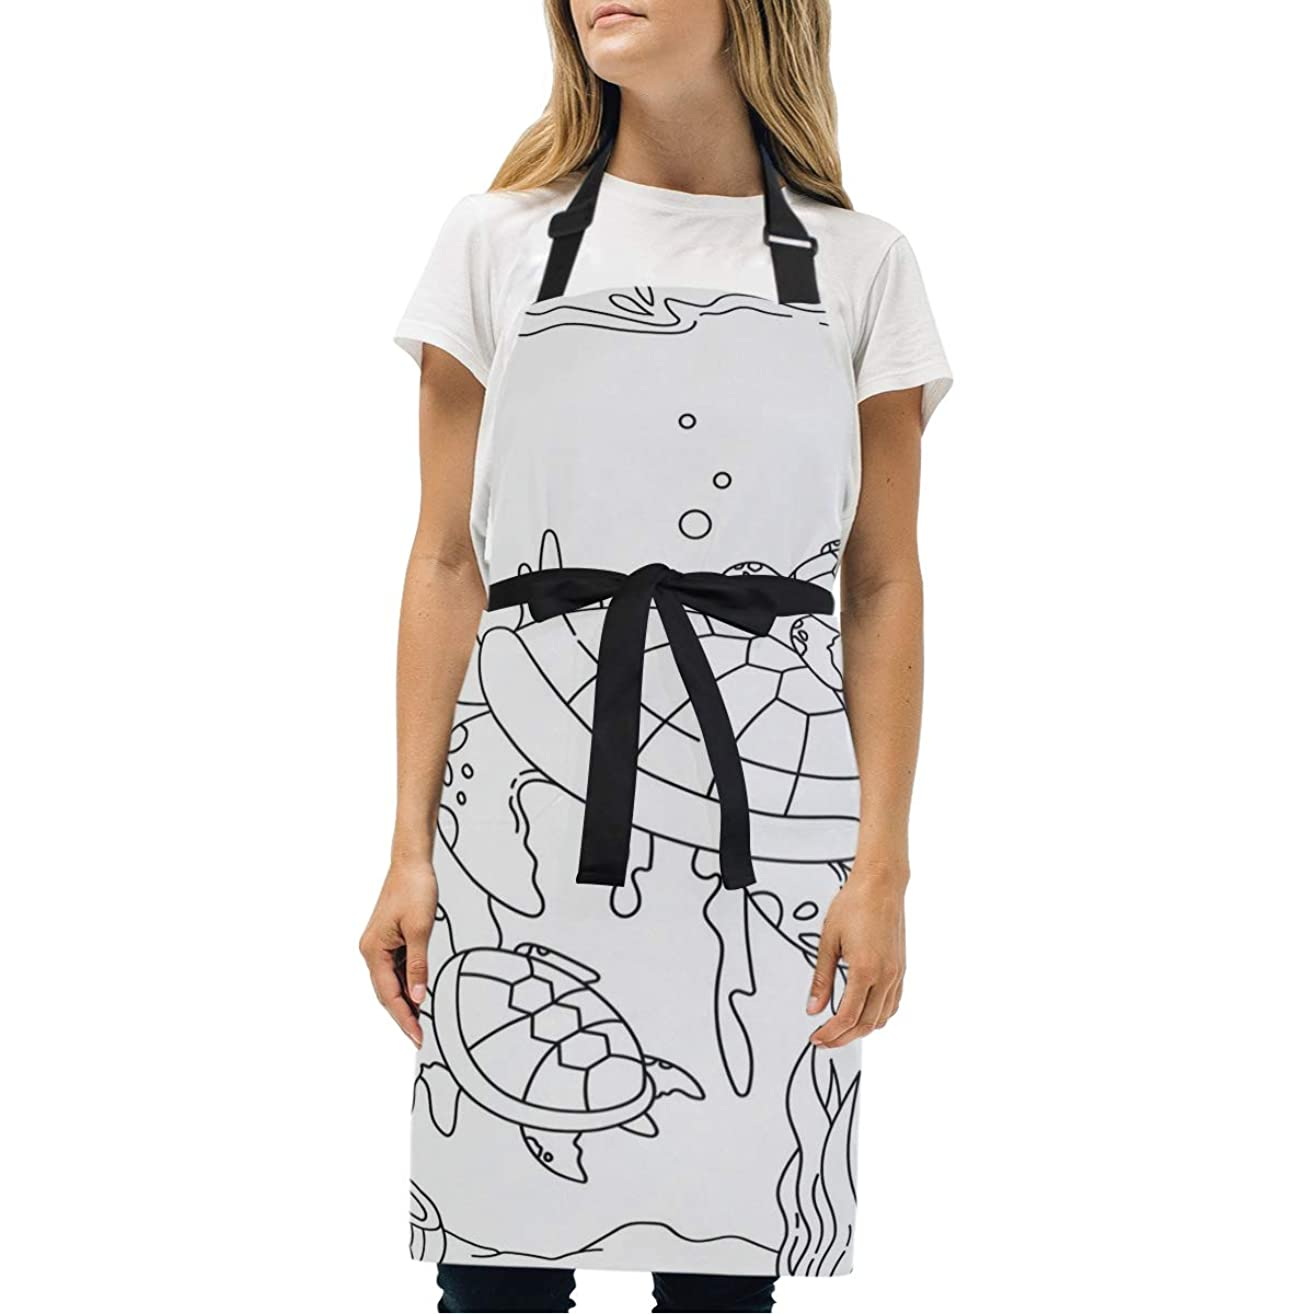 HJudge Womens Aprons Turtles Underwater Kitchen Bib Aprons with Pockets Adjustable Buckle on Neck